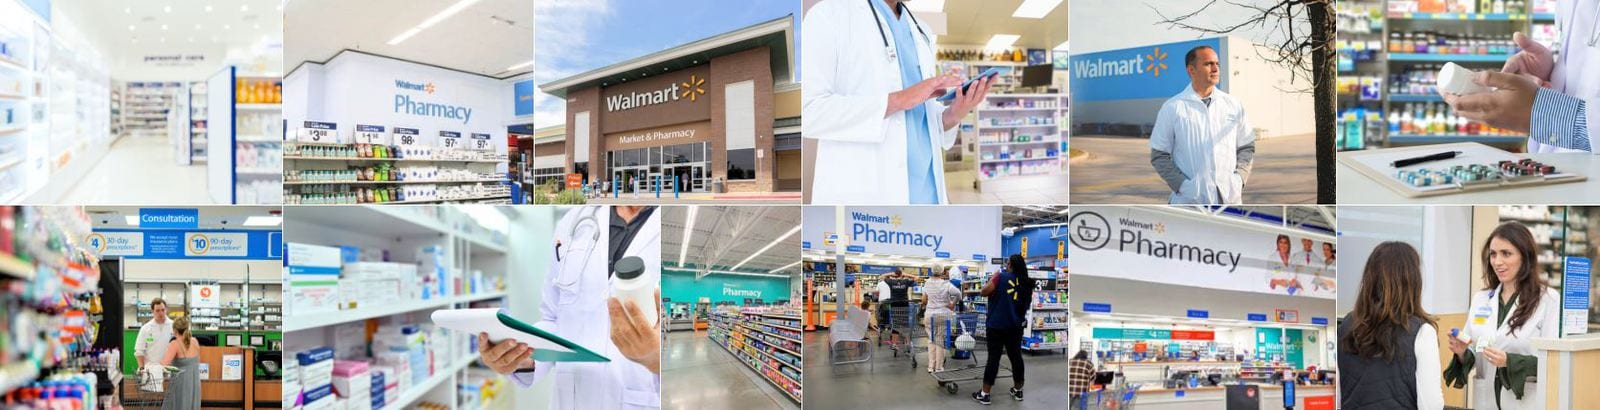 Walmart Pharmacy of La Palma